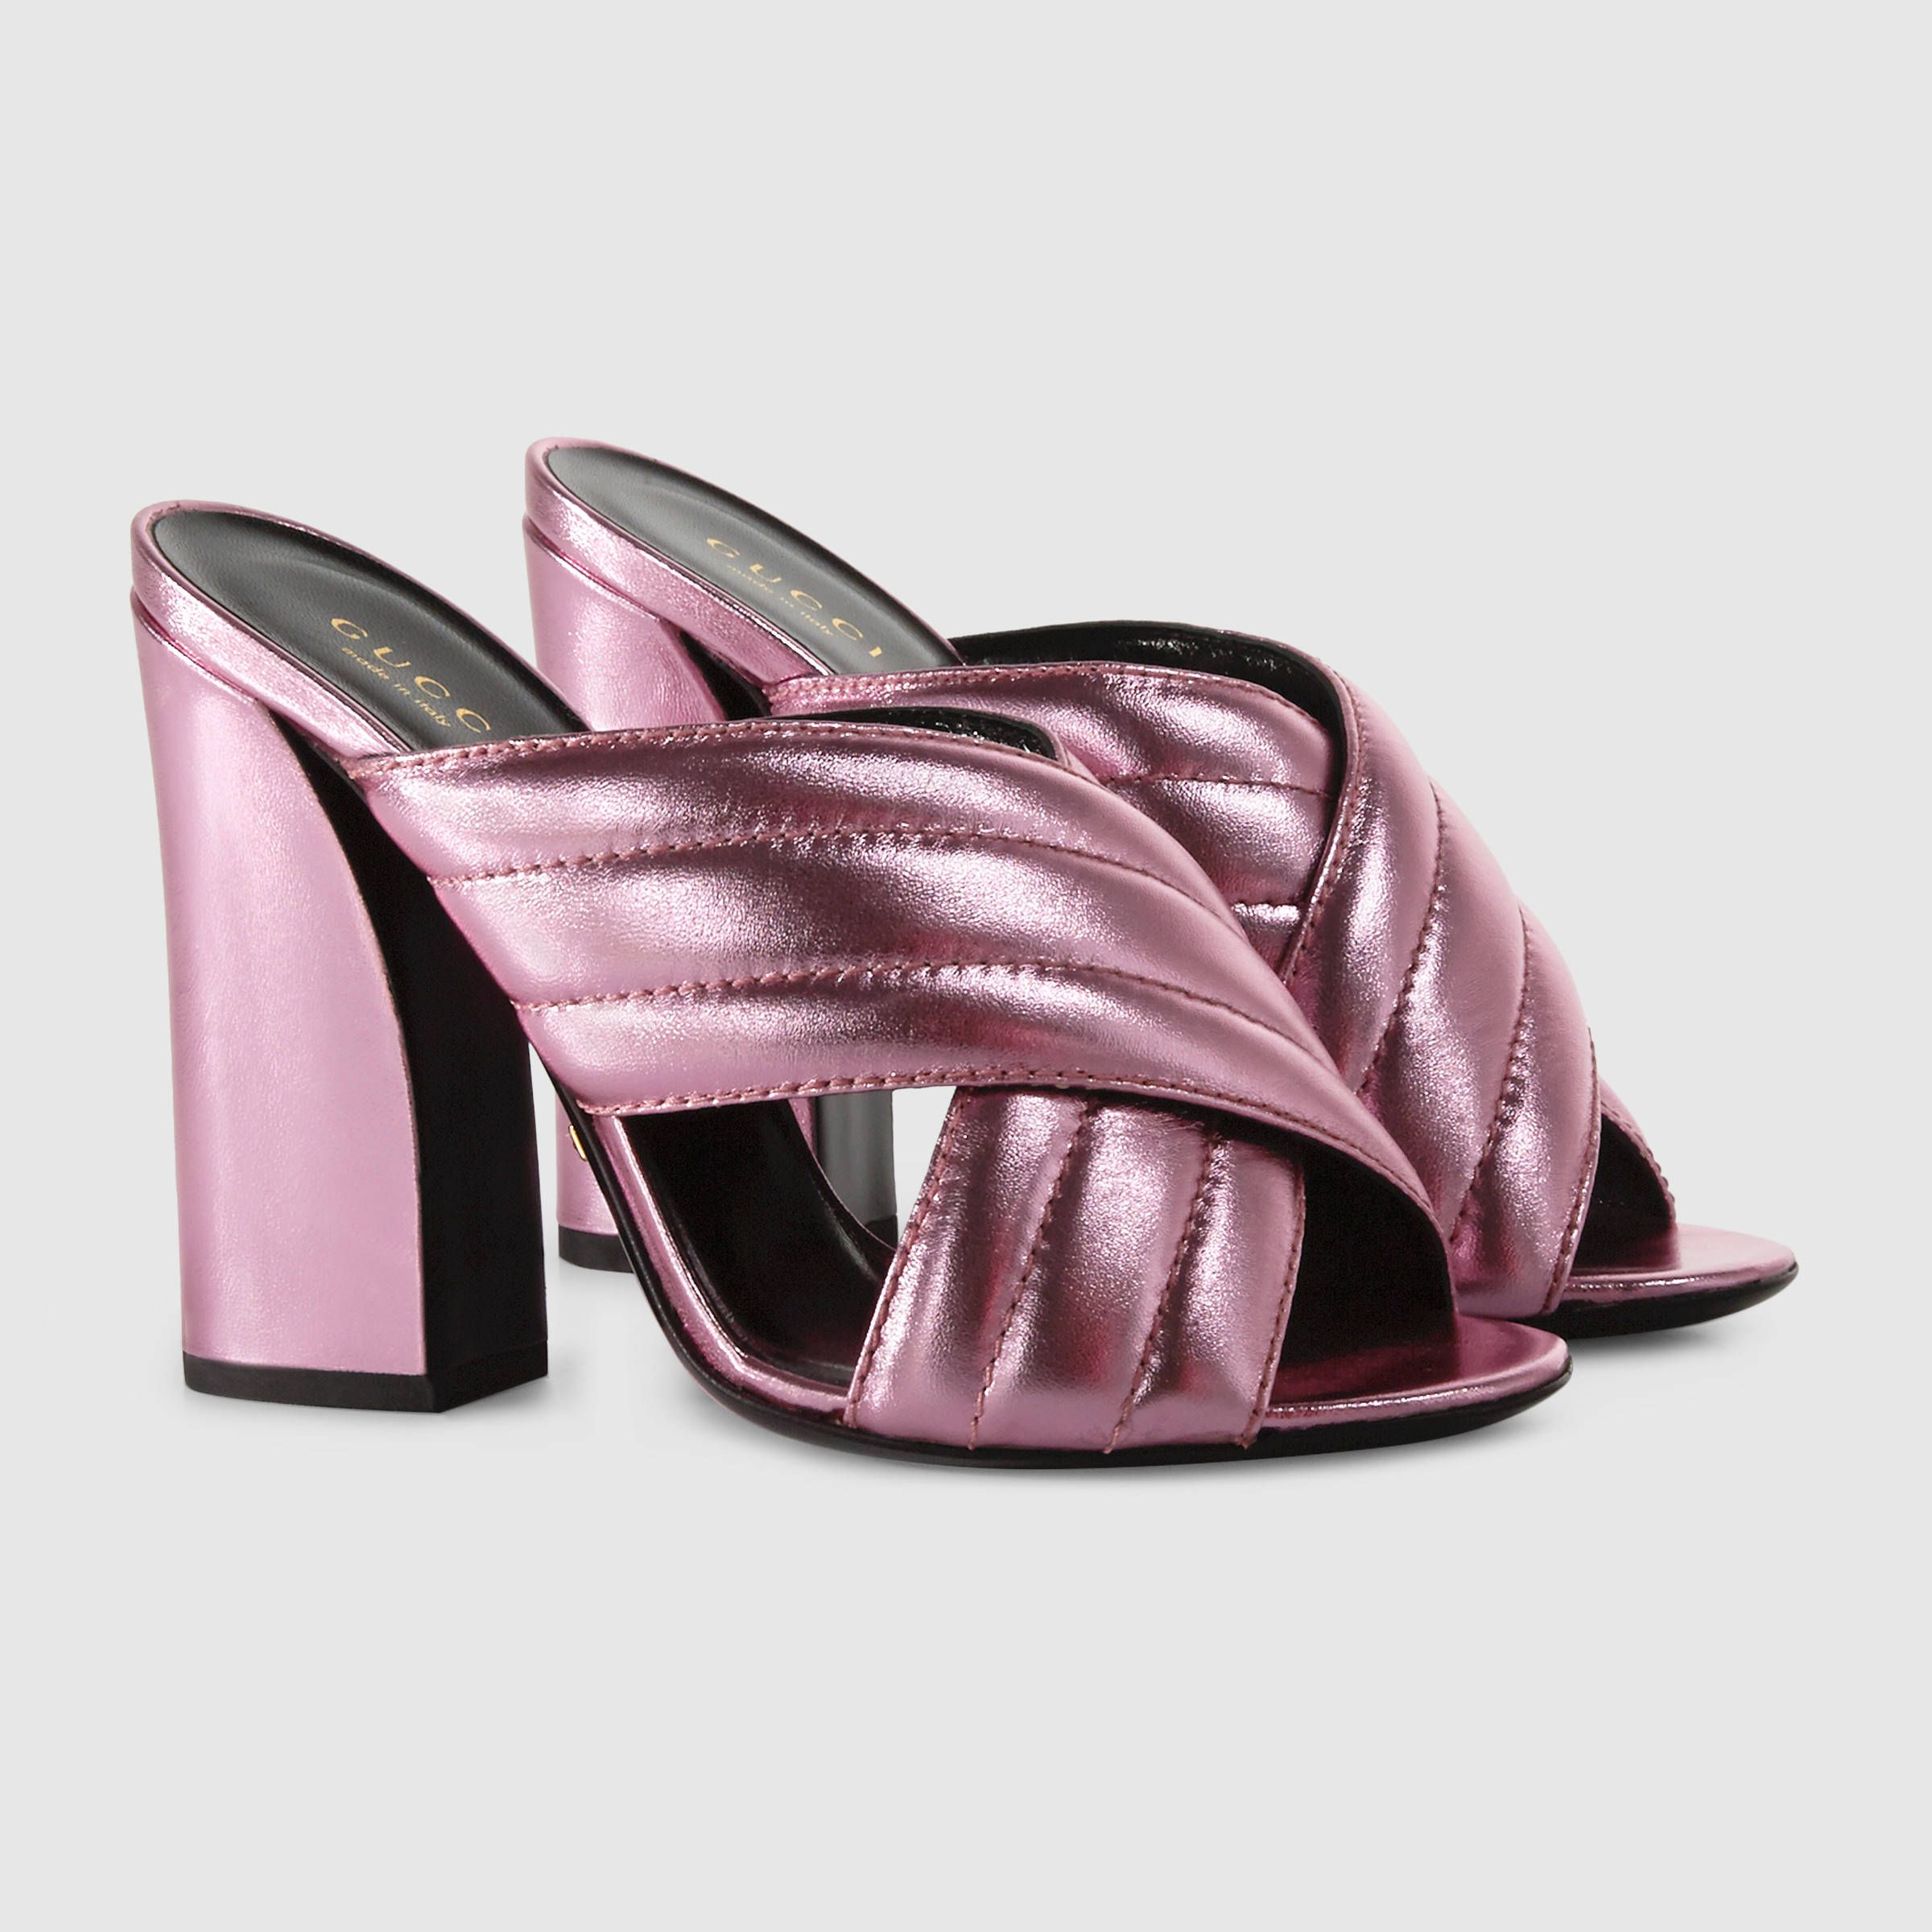 970675b1210b SO obsessed with Gucci s crossover mules from the 2016 Cruise Collection.  So 70s.